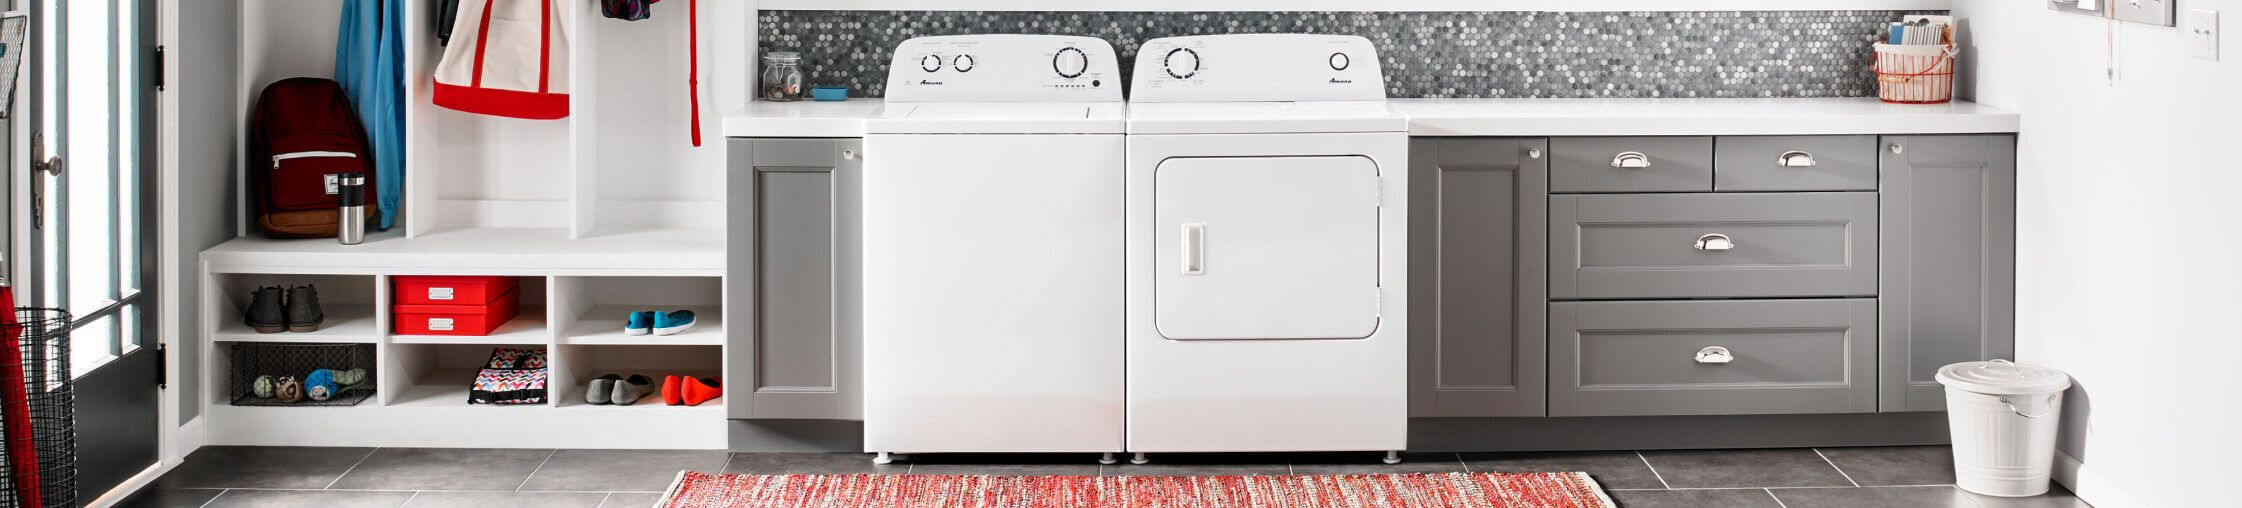 Amana® washer and dryer pair in laundry room